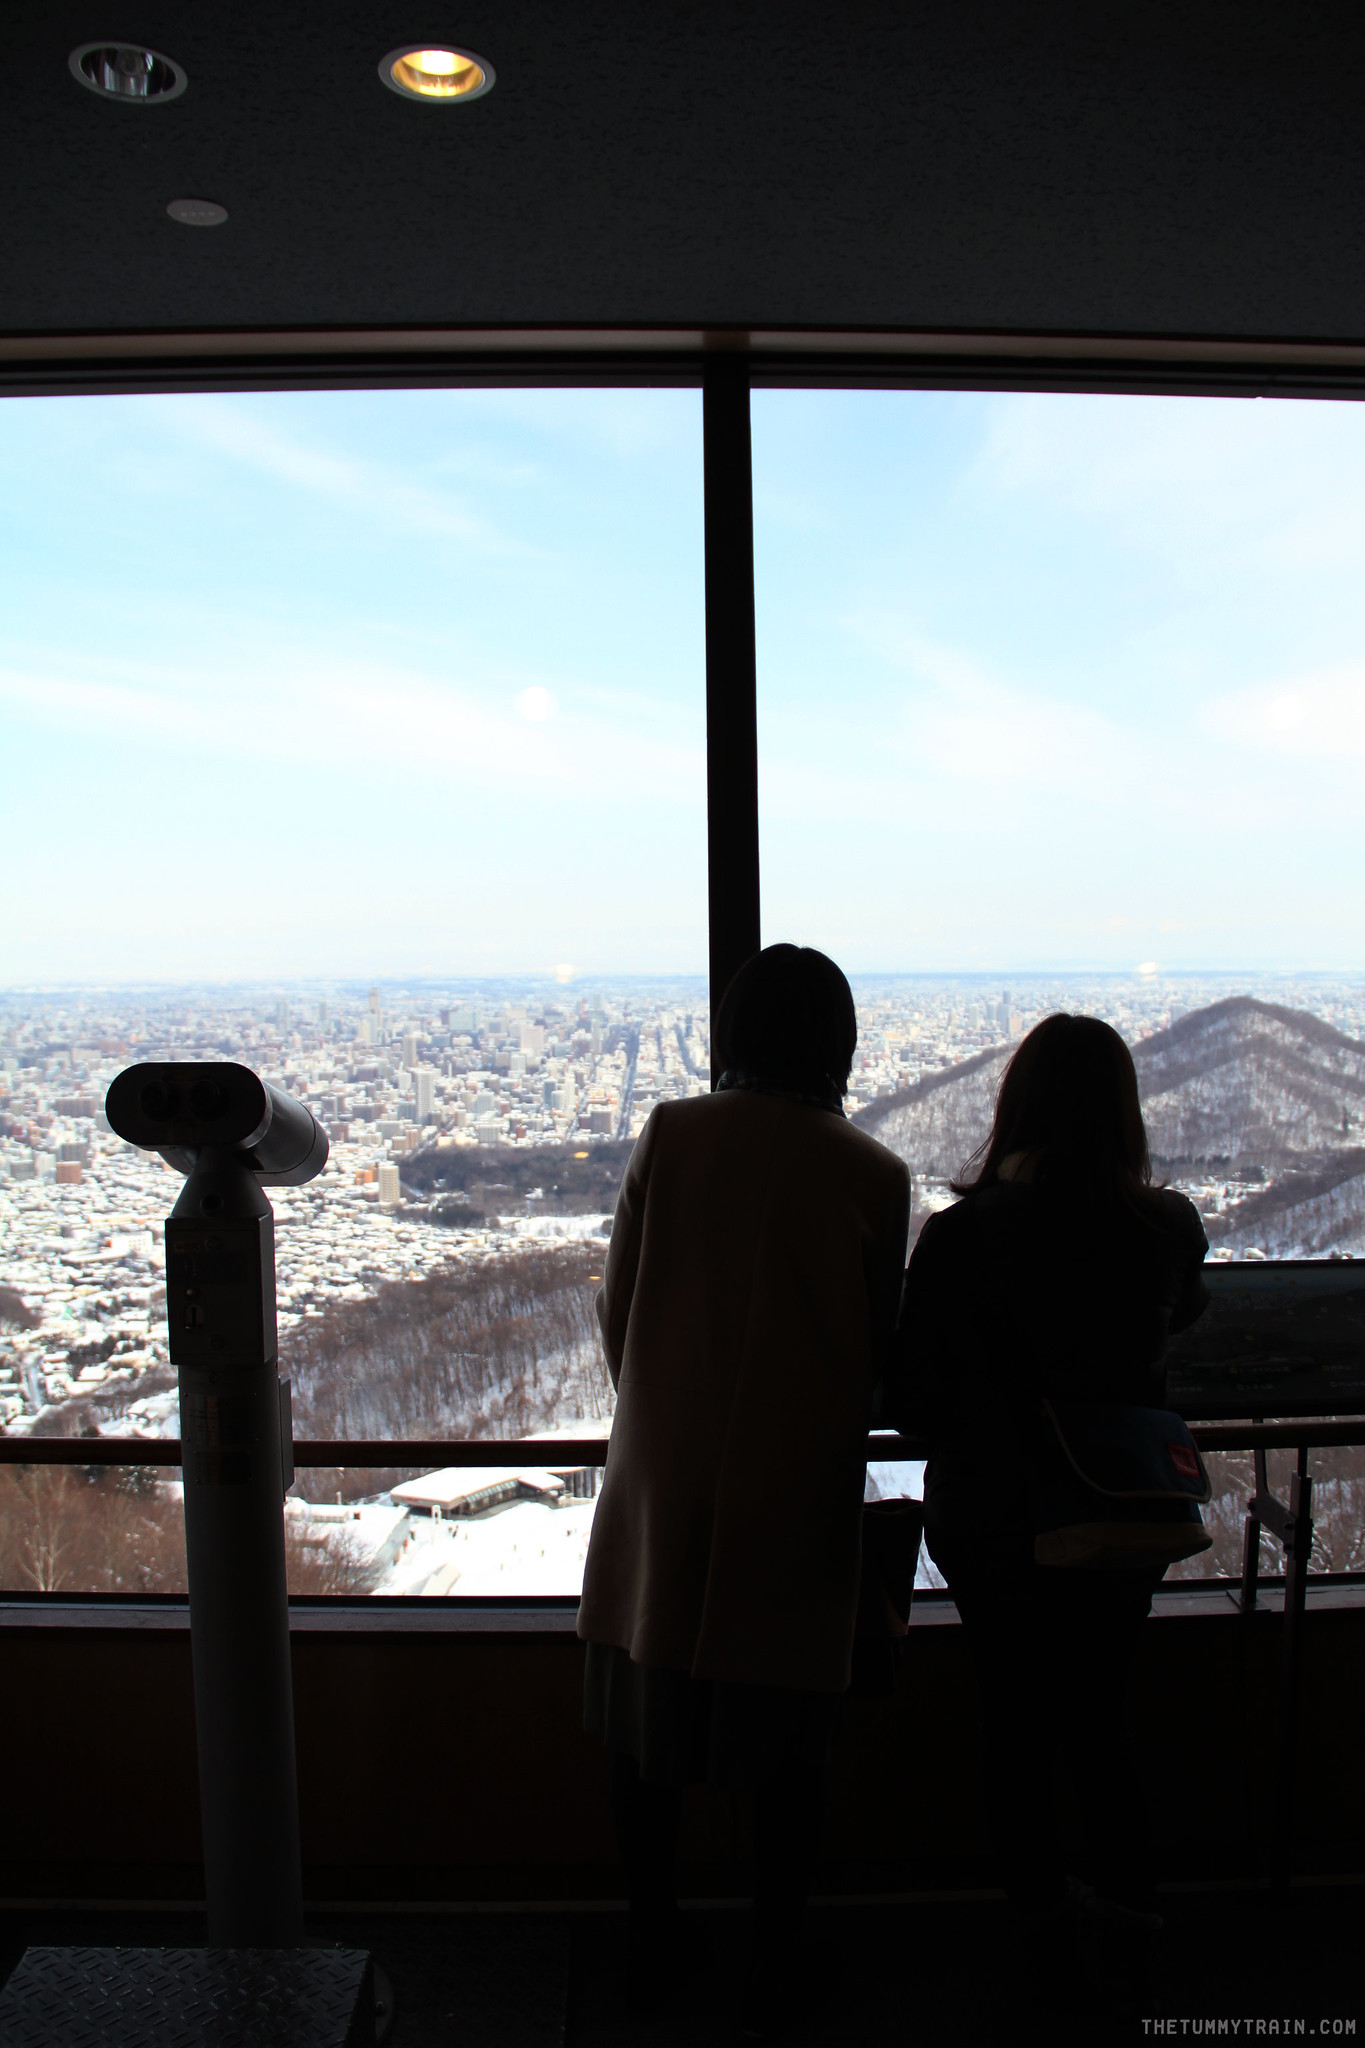 32101966713 11dc1519db k - Sapporo Snow And Smile: 8 Unforgettable Winter Experiences in Sapporo City